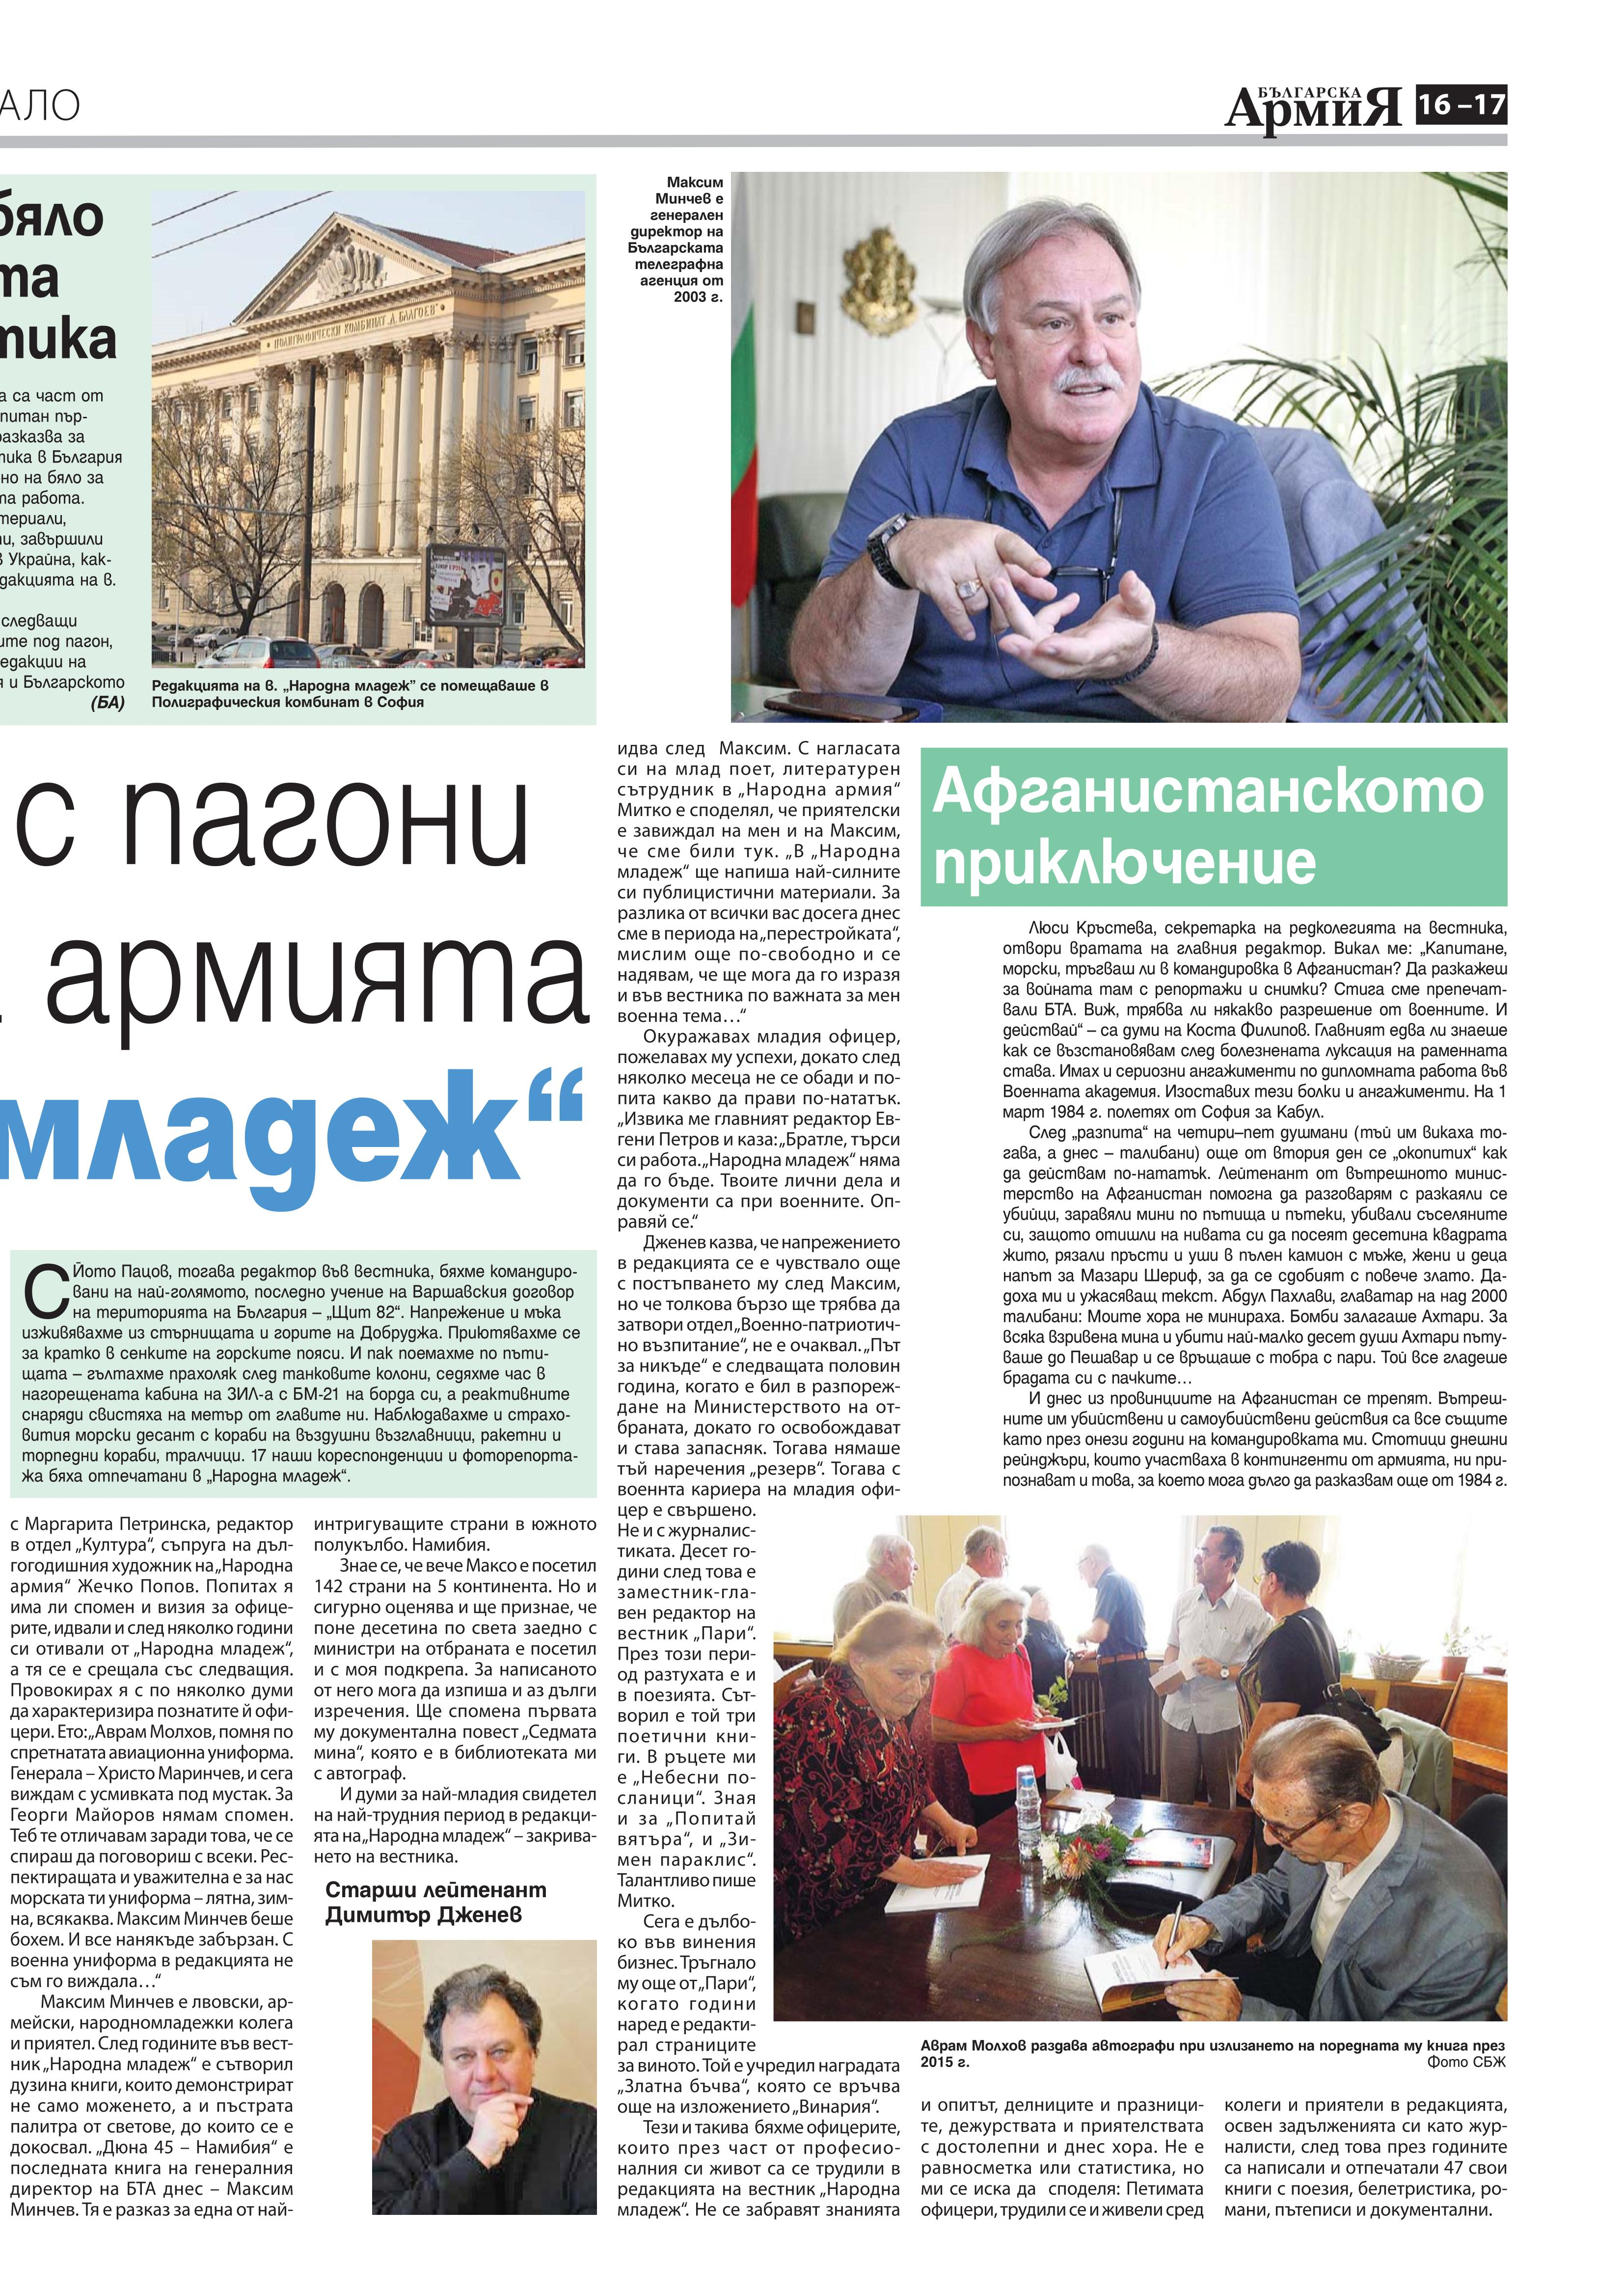 https://armymedia.bg/wp-content/uploads/2015/06/17.page1_-127.jpg